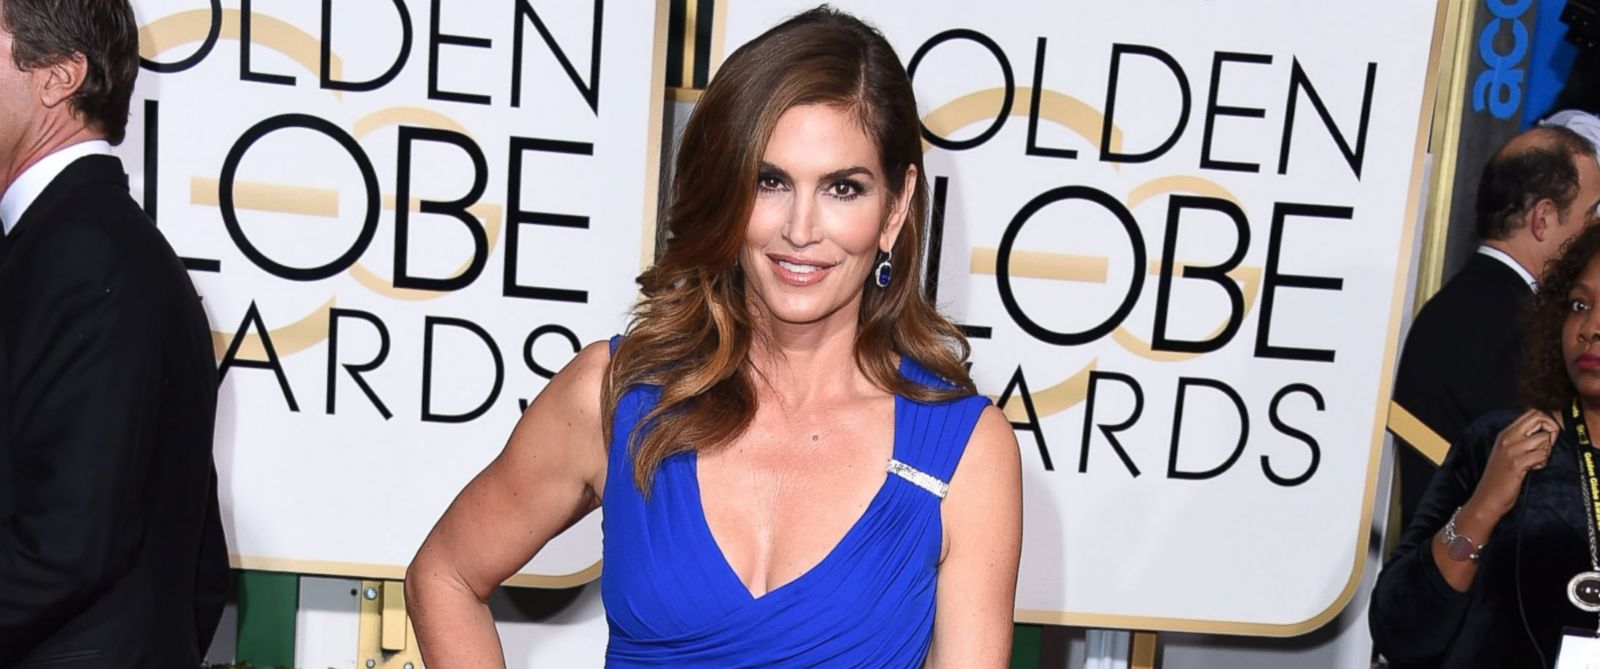 PHOTO: Cindy Crawford arrives at the 72nd Annual Golden Globe Awards at The Beverly Hilton Hotel, Jan.11, 2015, in Beverly Hills, Calif.